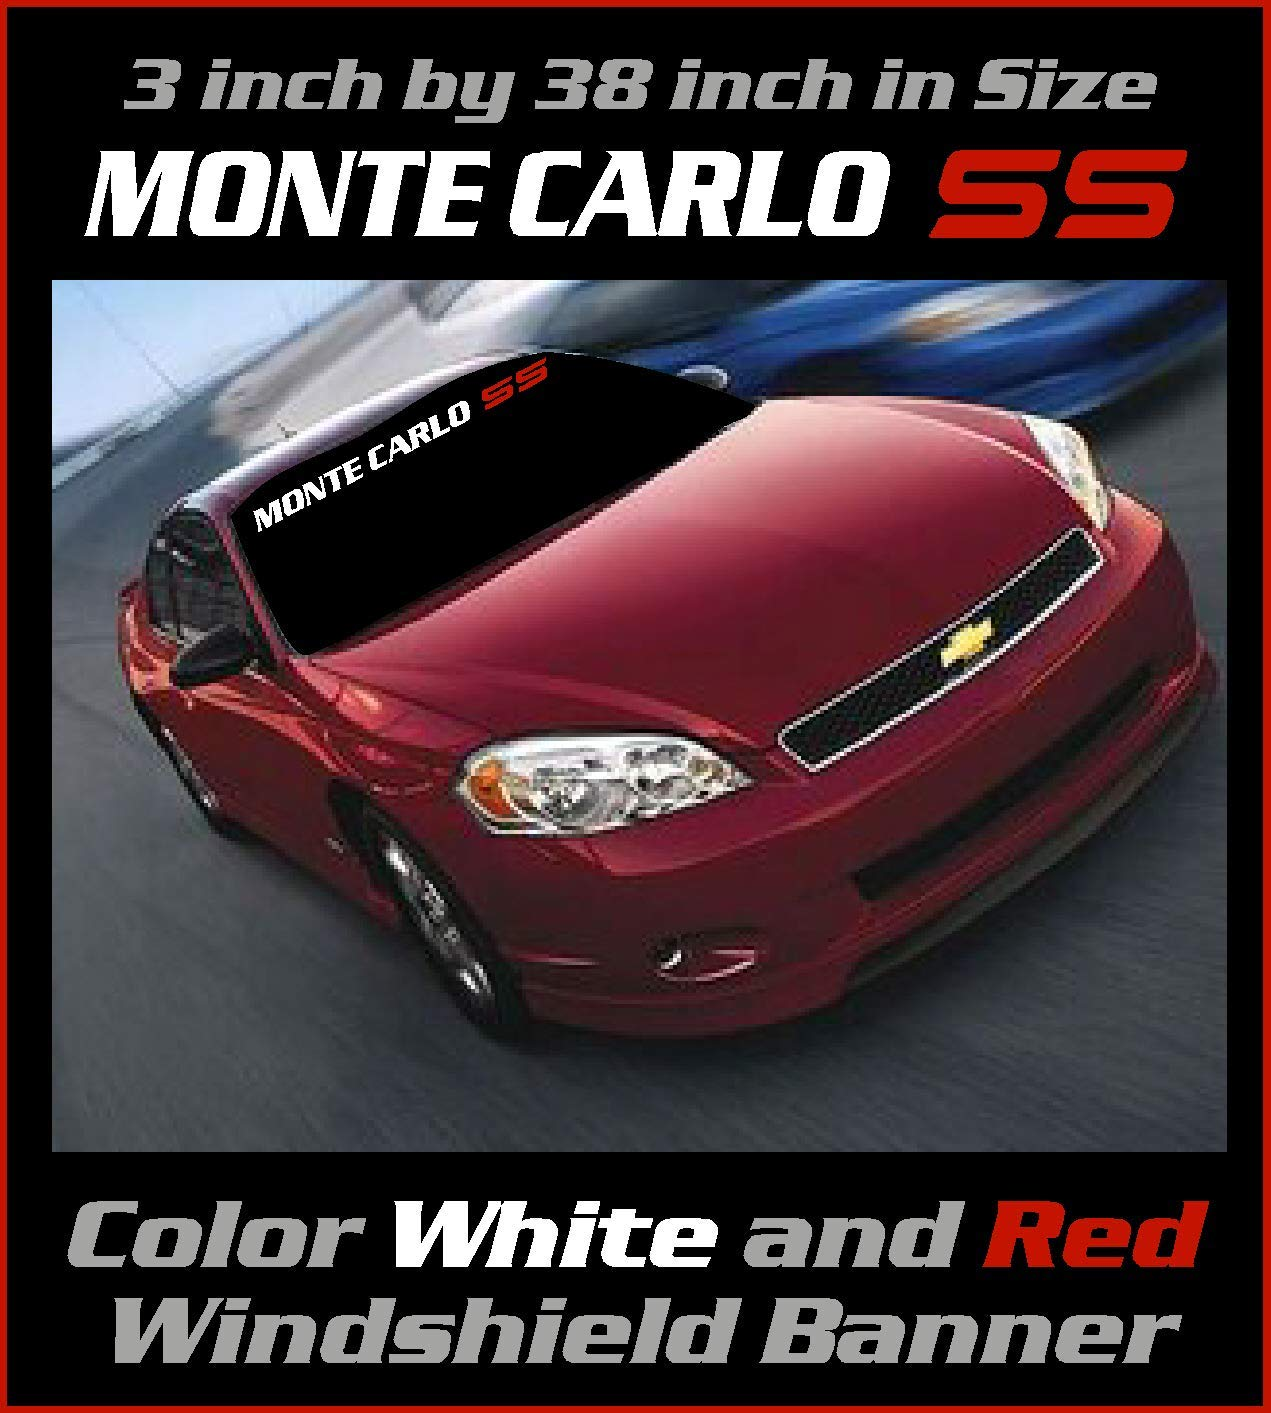 Sticker 3.5 inch by 38 inch White and Red Monte Carlo SS Windshield Banner Graphic Emblem Decal